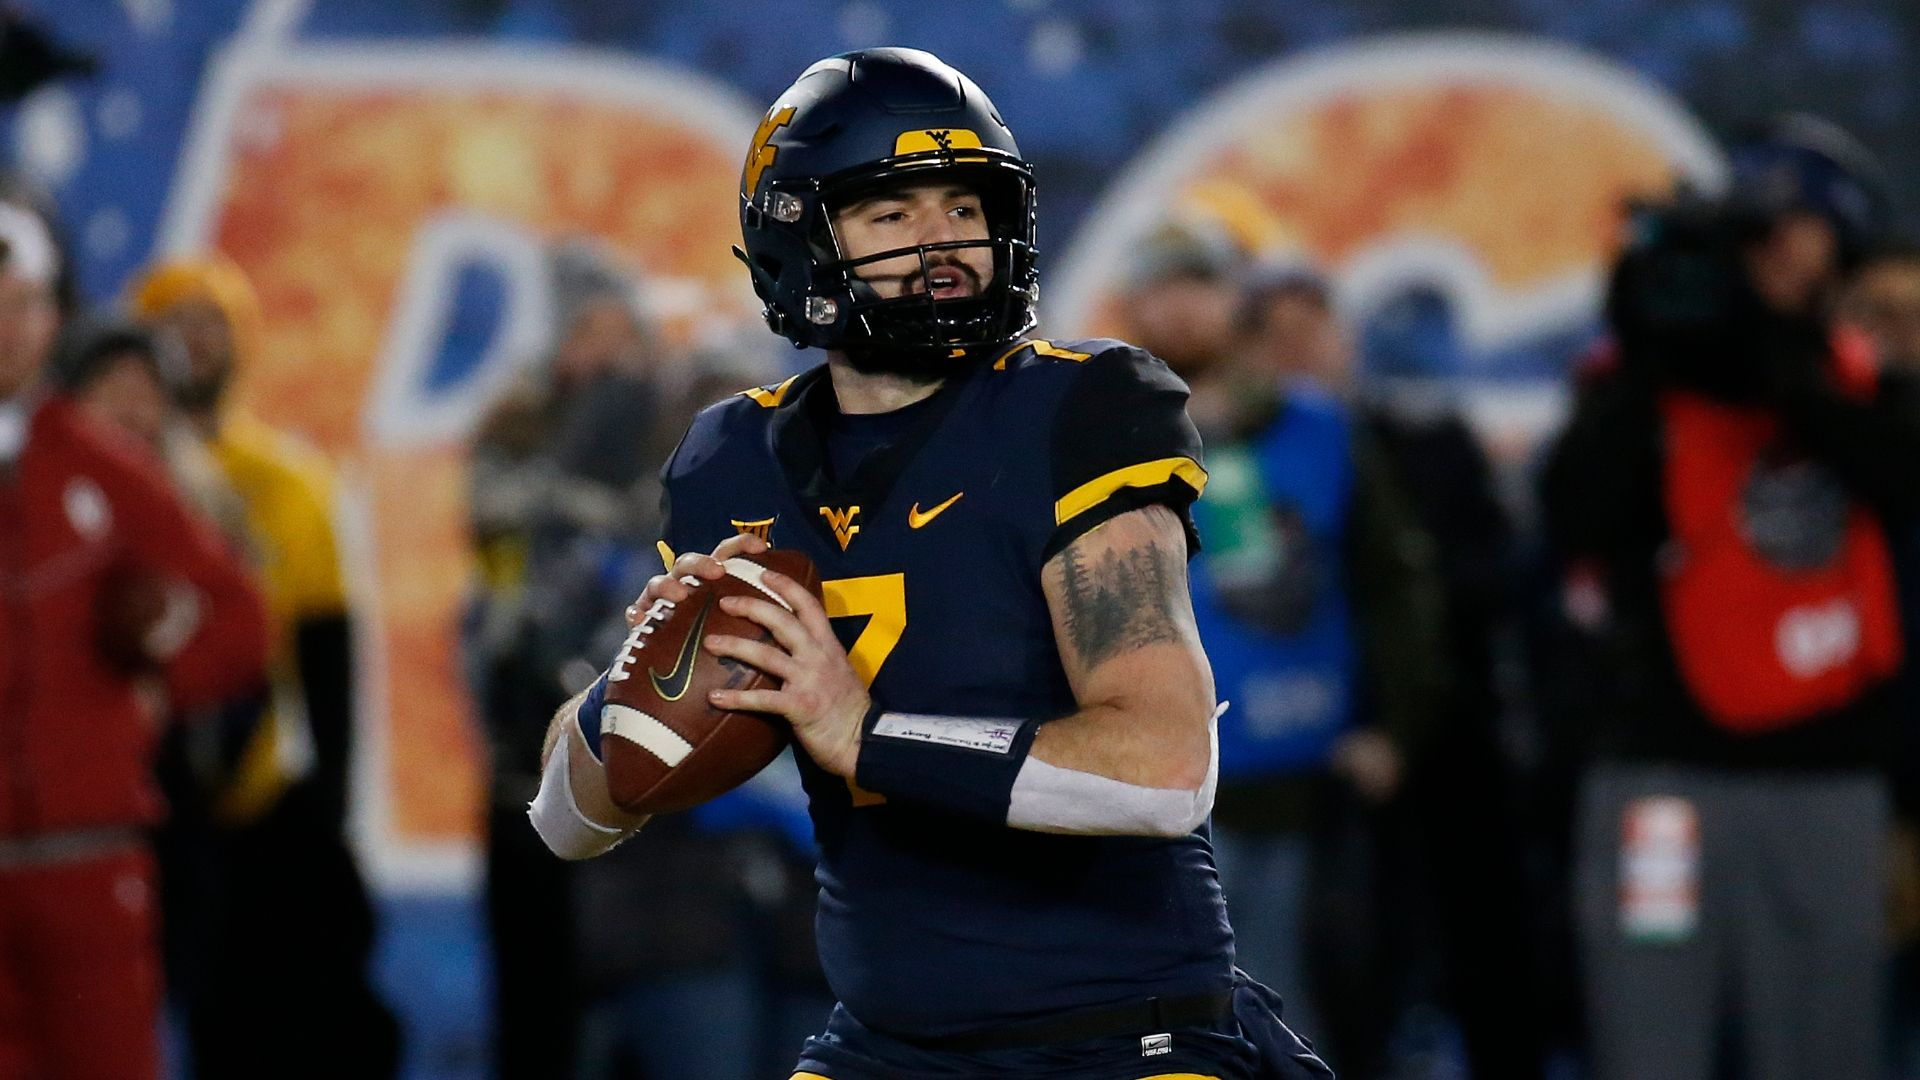 NFL draft profile: Will Grier